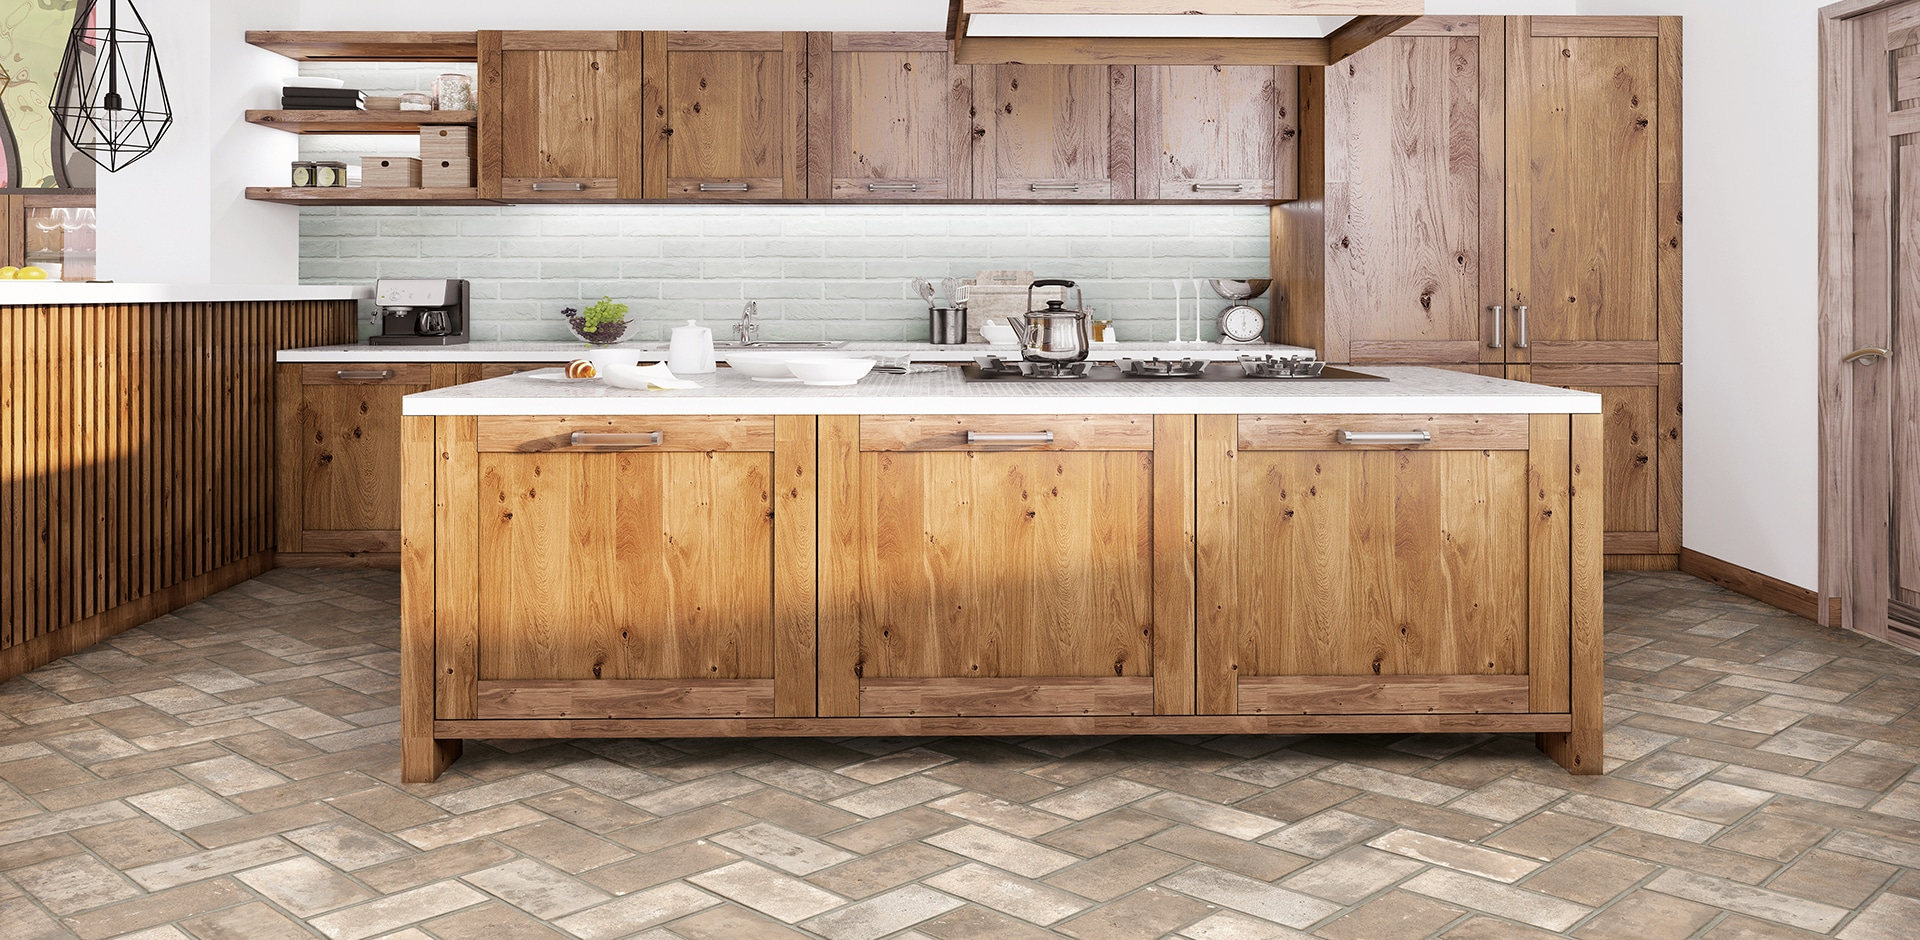 brown cabinets on ivory brick flooring